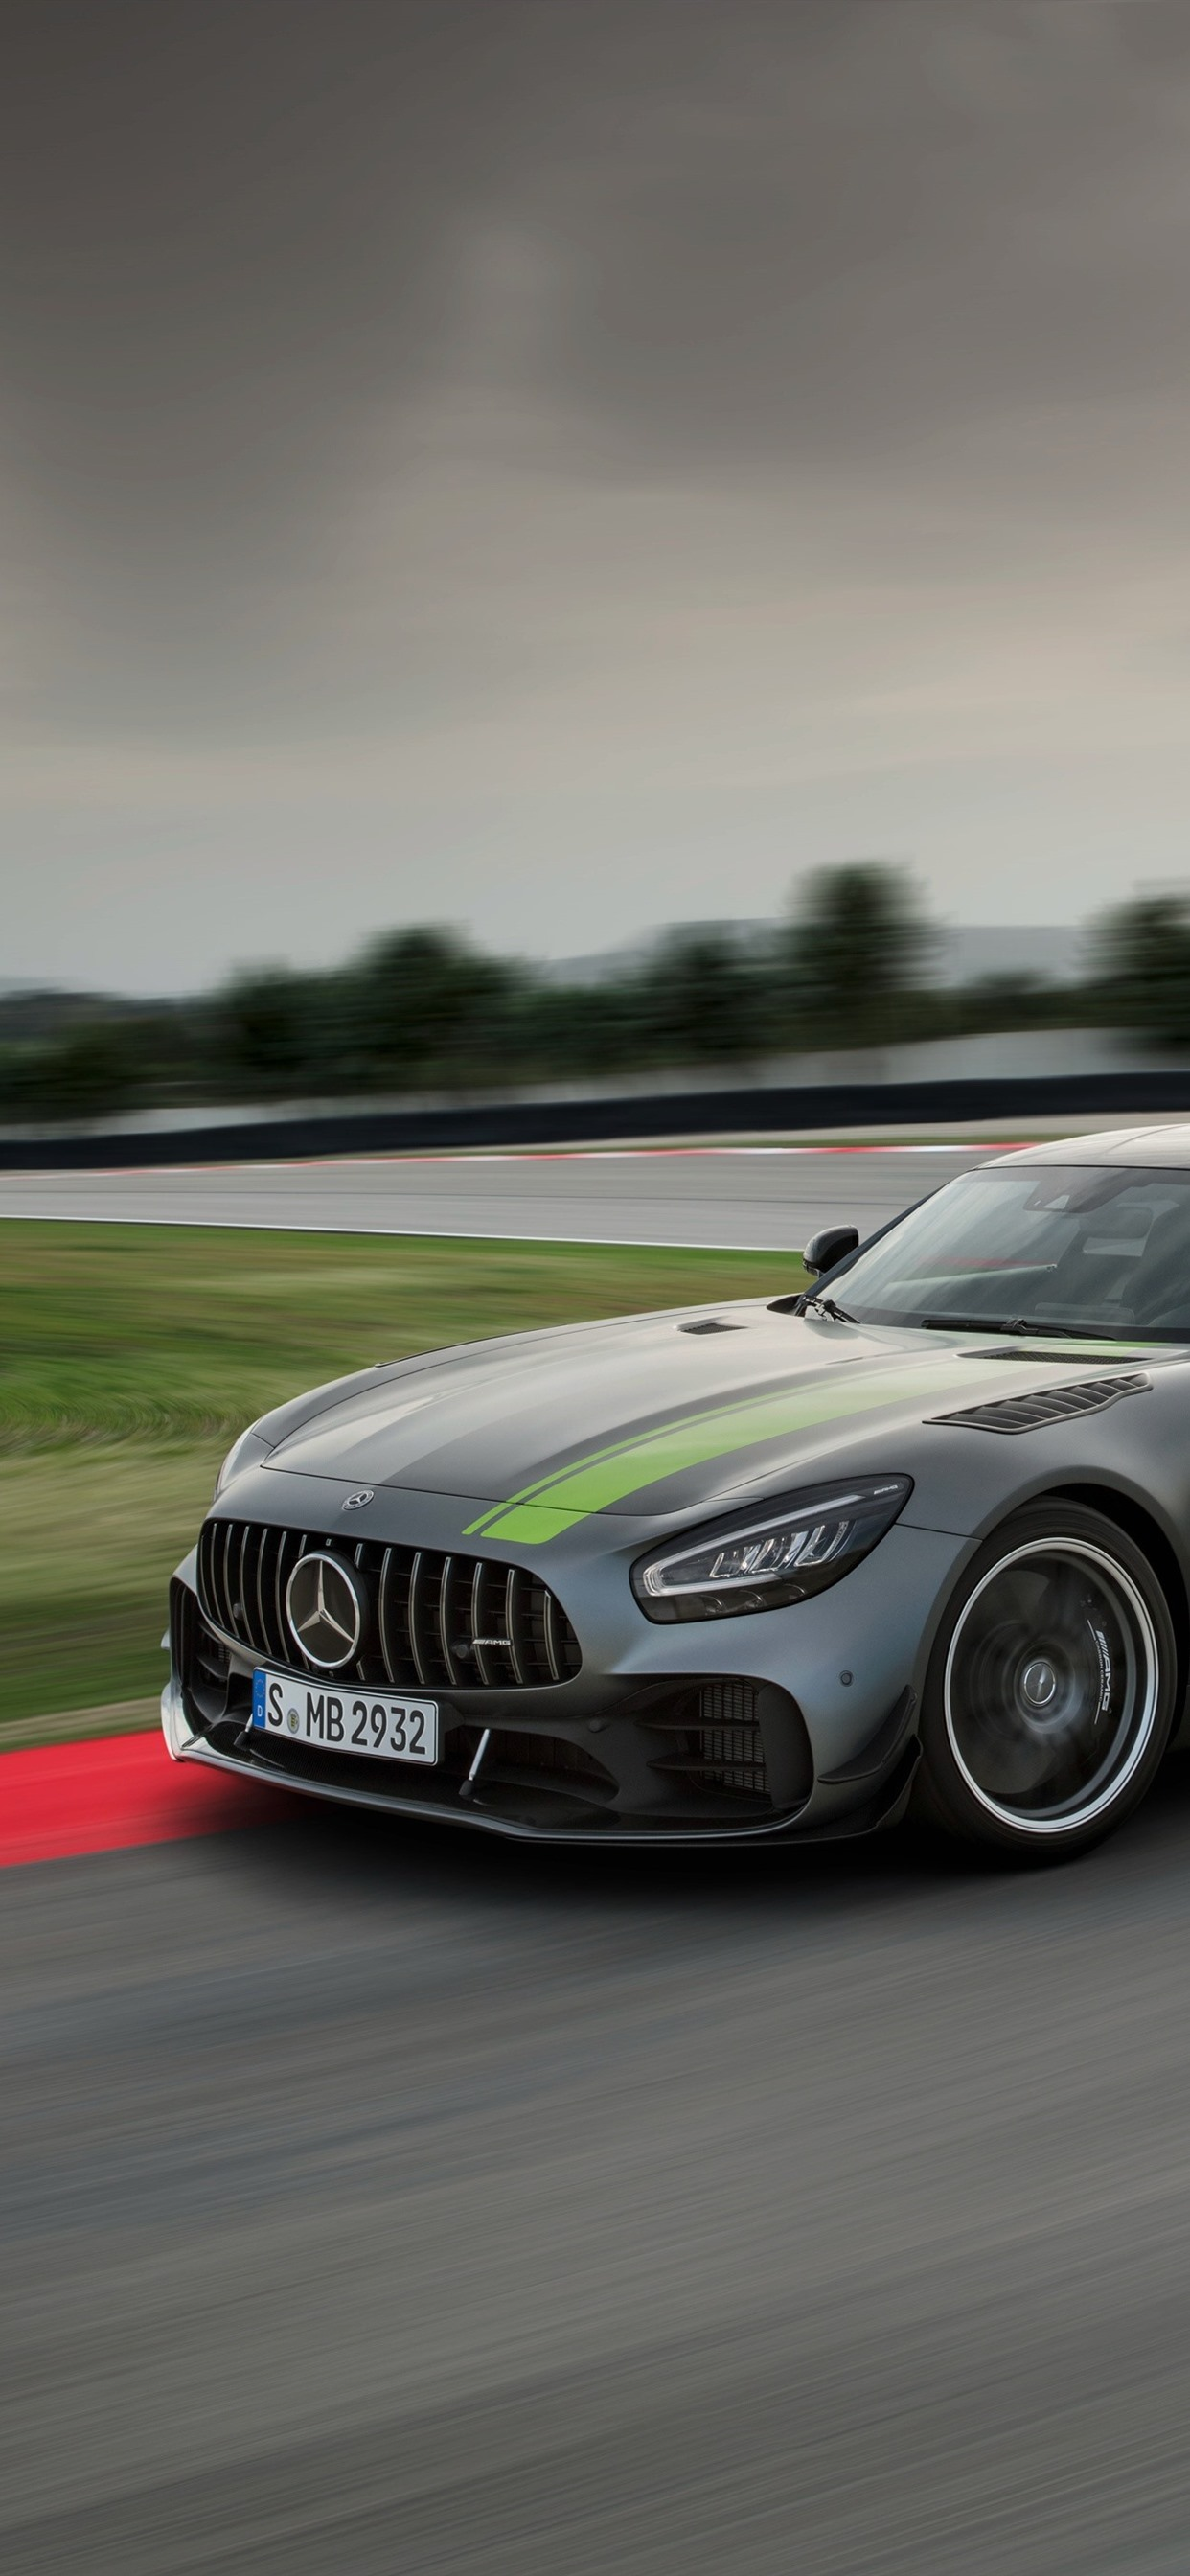 Mercedes Benz Amg Gt R Pro Gray Car Speed 1242x2688 Iphone Xs Max